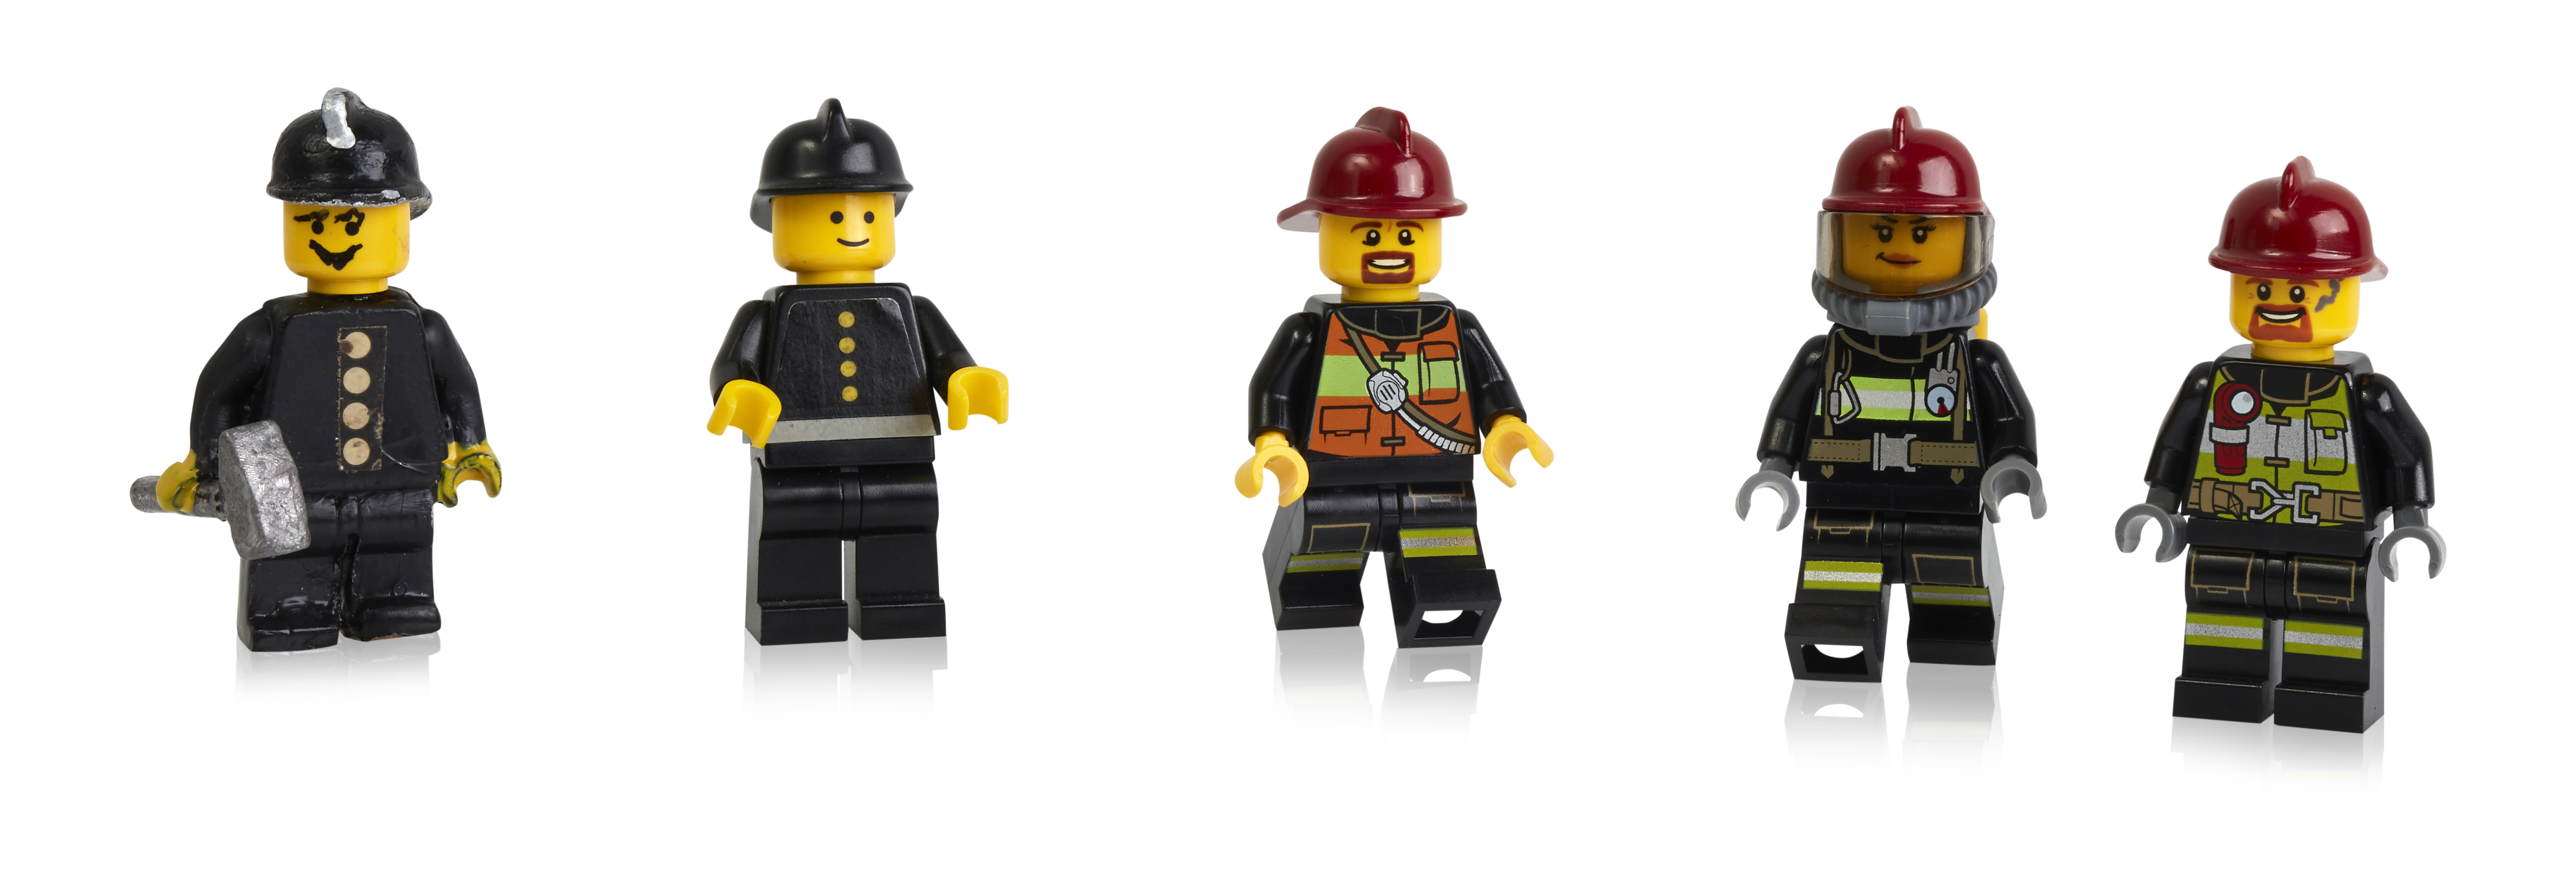 early-prototypes-first-and-more-recent-minifigure-firefighters.jpg